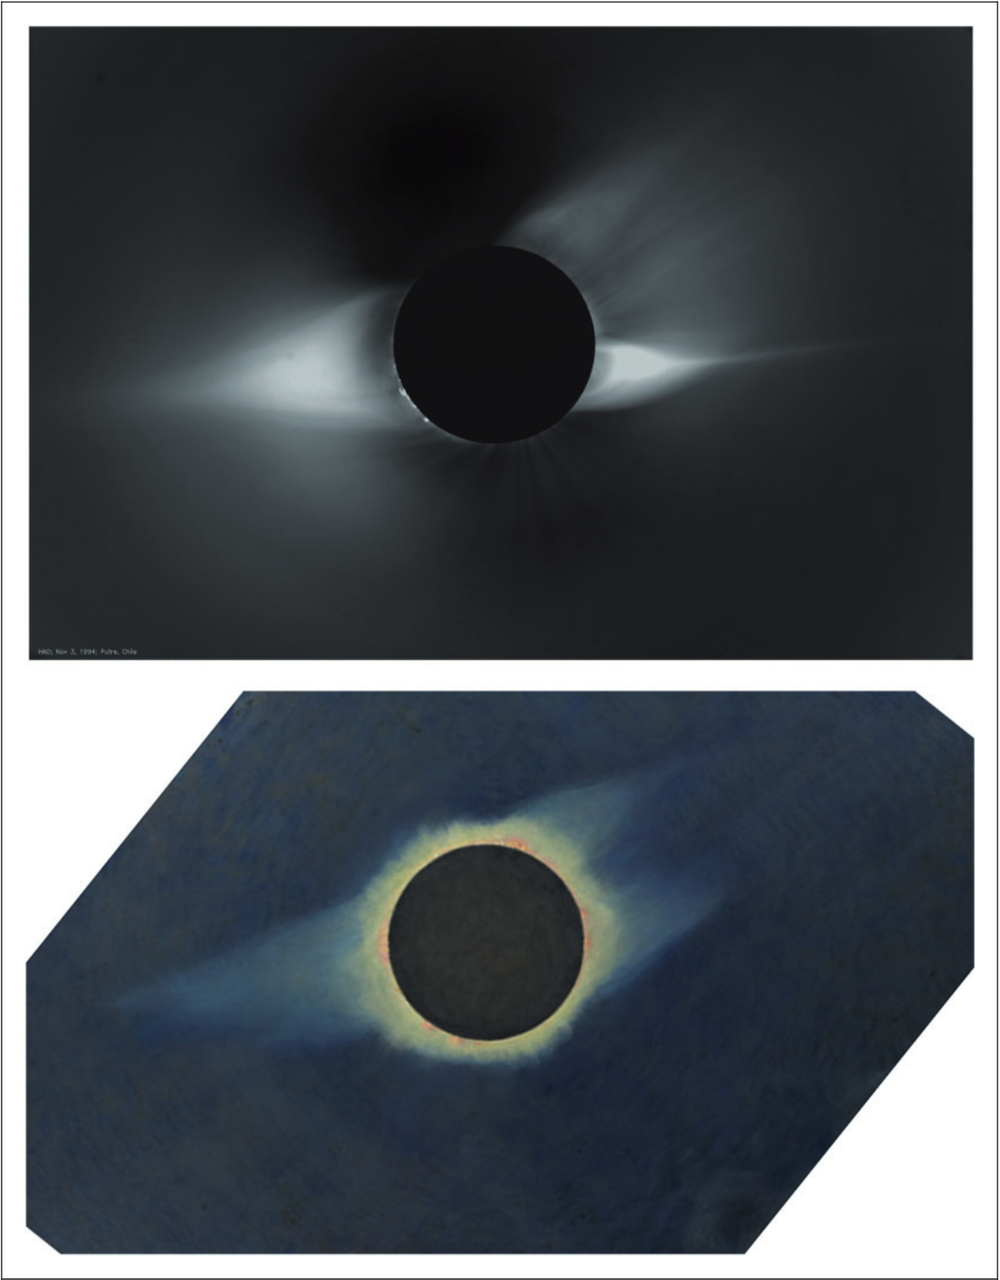 The photo above was taken of the 1994 eclipse, courtesy of the High Altitude Observatory (HAO), University Corporation for Atmospheric Research (UCAR), Boulder, Colorado sponsored by the National Science Foundation, and Howard Russell Butler's painting is of the 1932 eclipse, kindly provided by the Princeton University Art Museum.